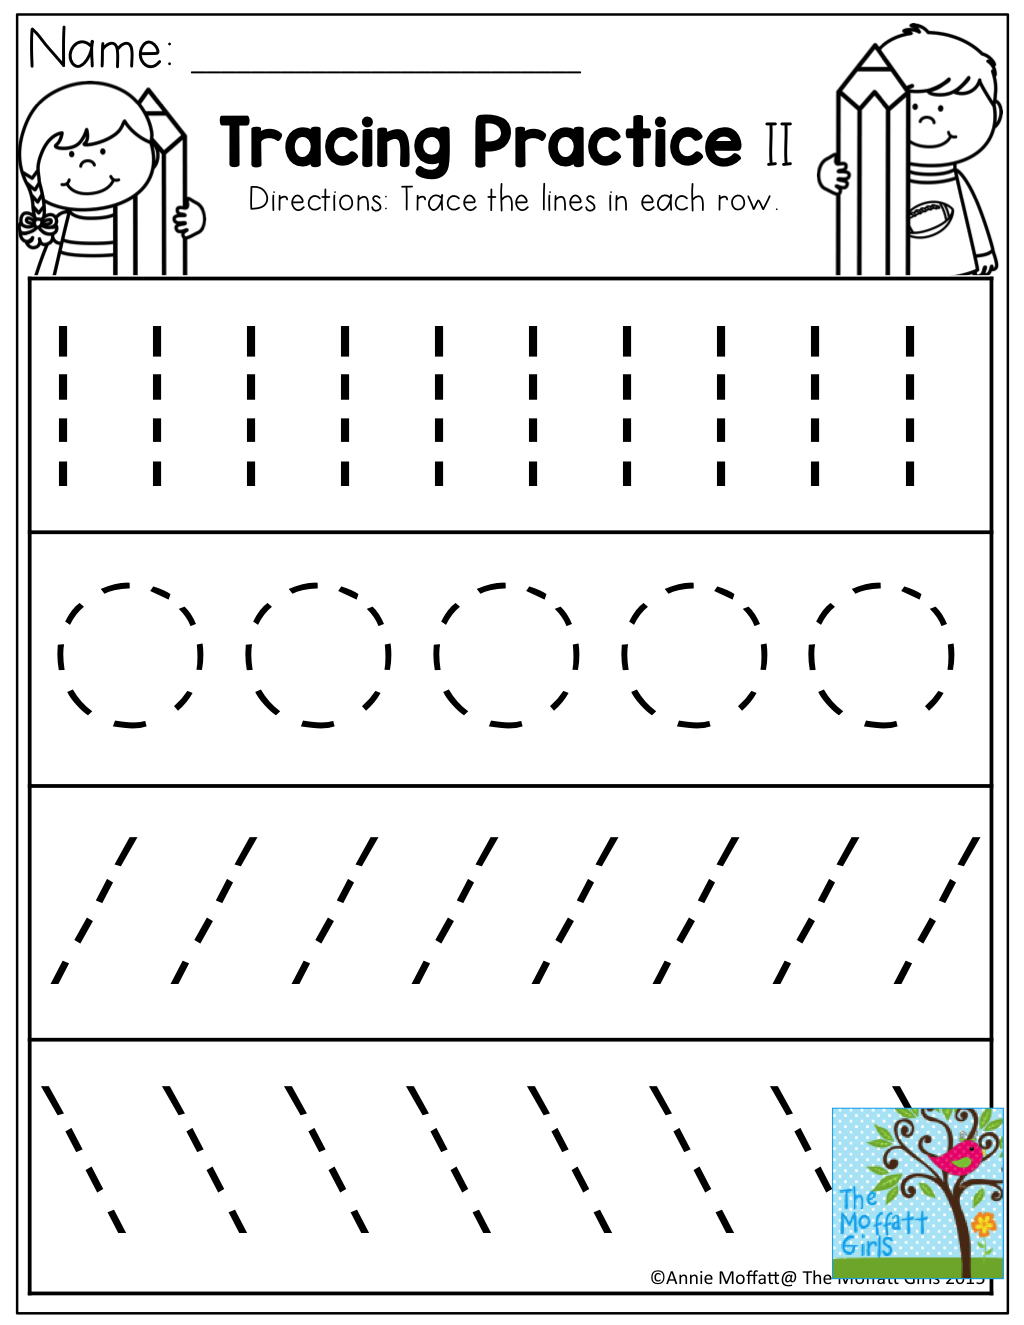 Worksheets Pre K Learning Worksheets tracing practice tons of printable for pre k kindergarten 1st grade